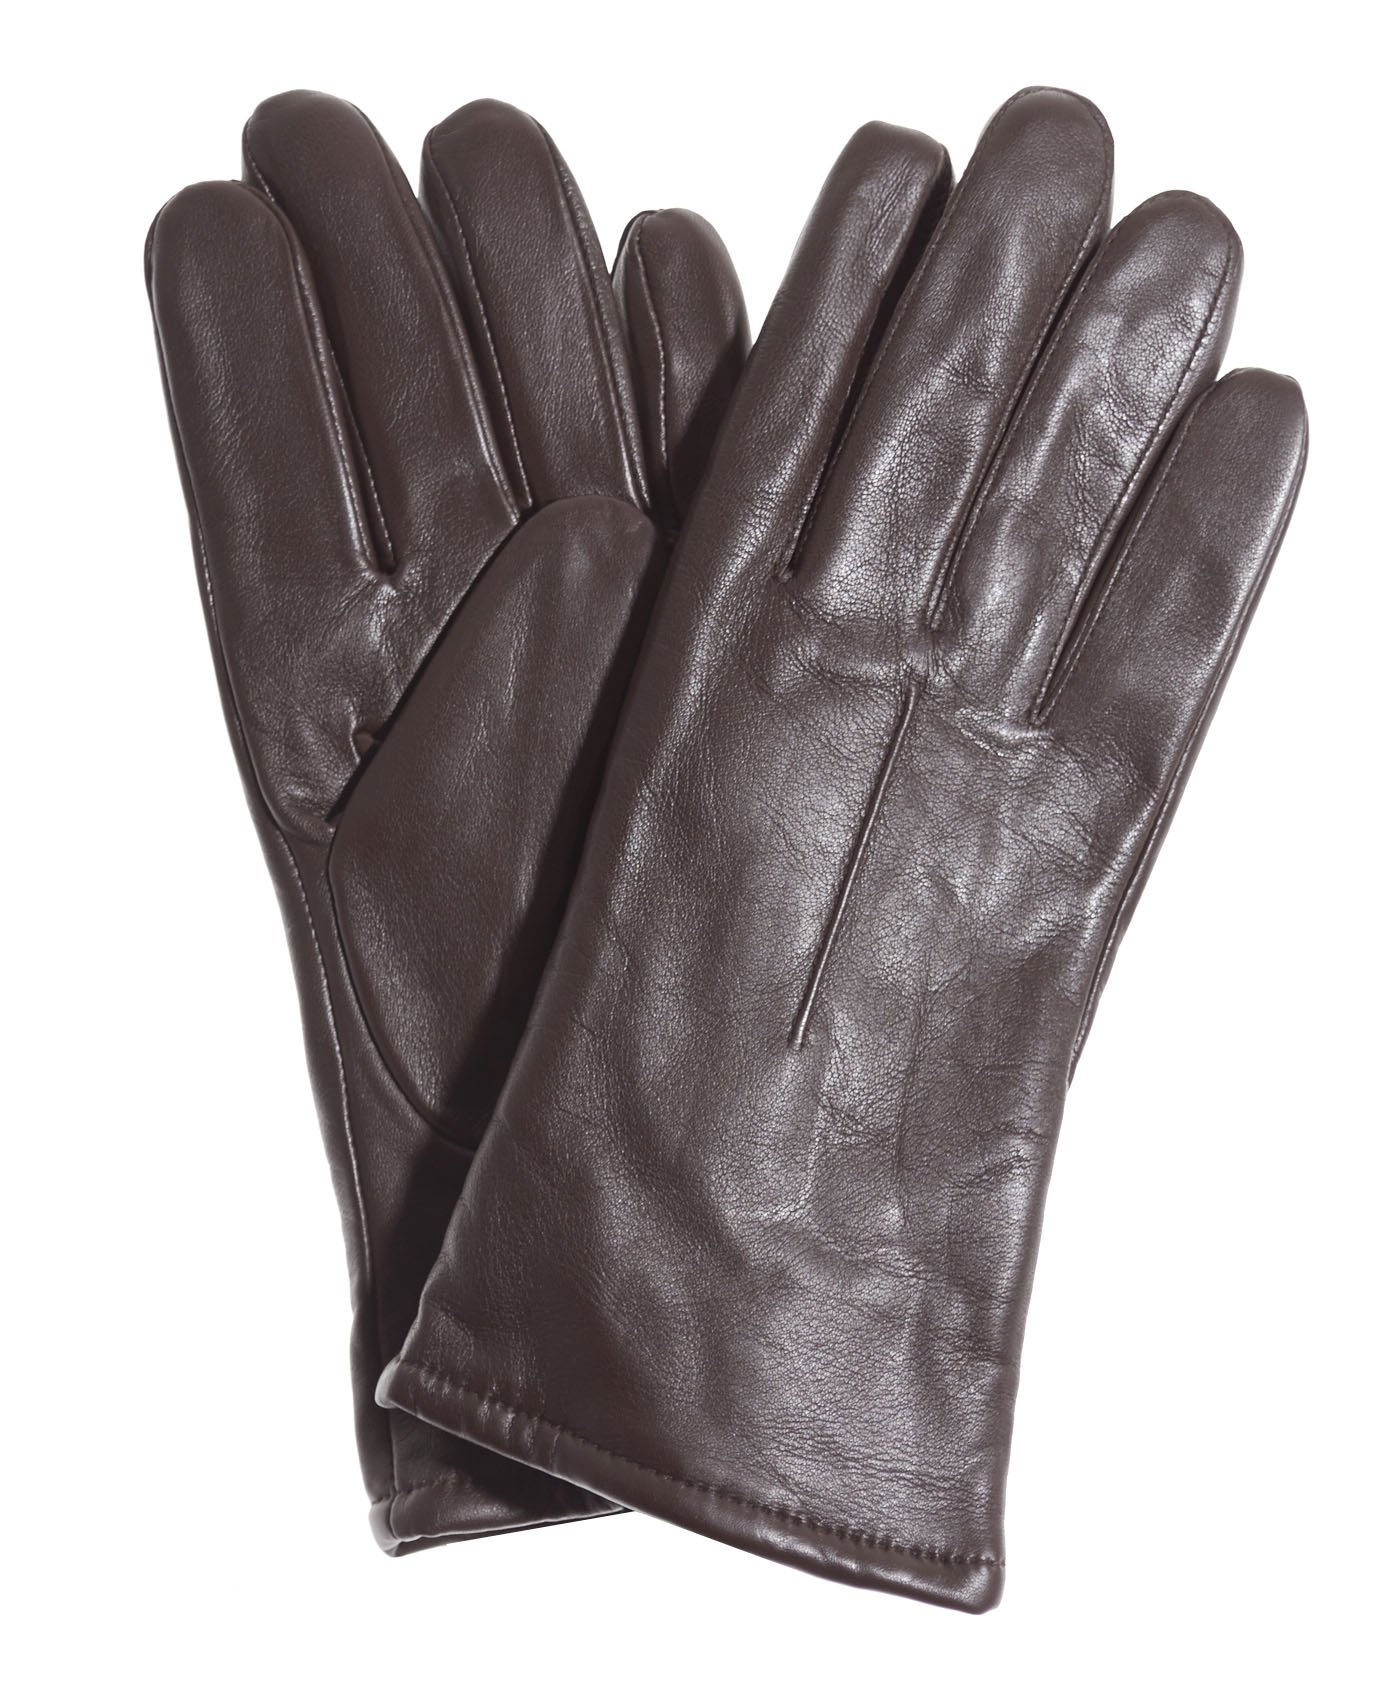 Pratt and Hart Women's Classic Sherpa Lined Leather Gloves Size 7 1/2 Color Brown